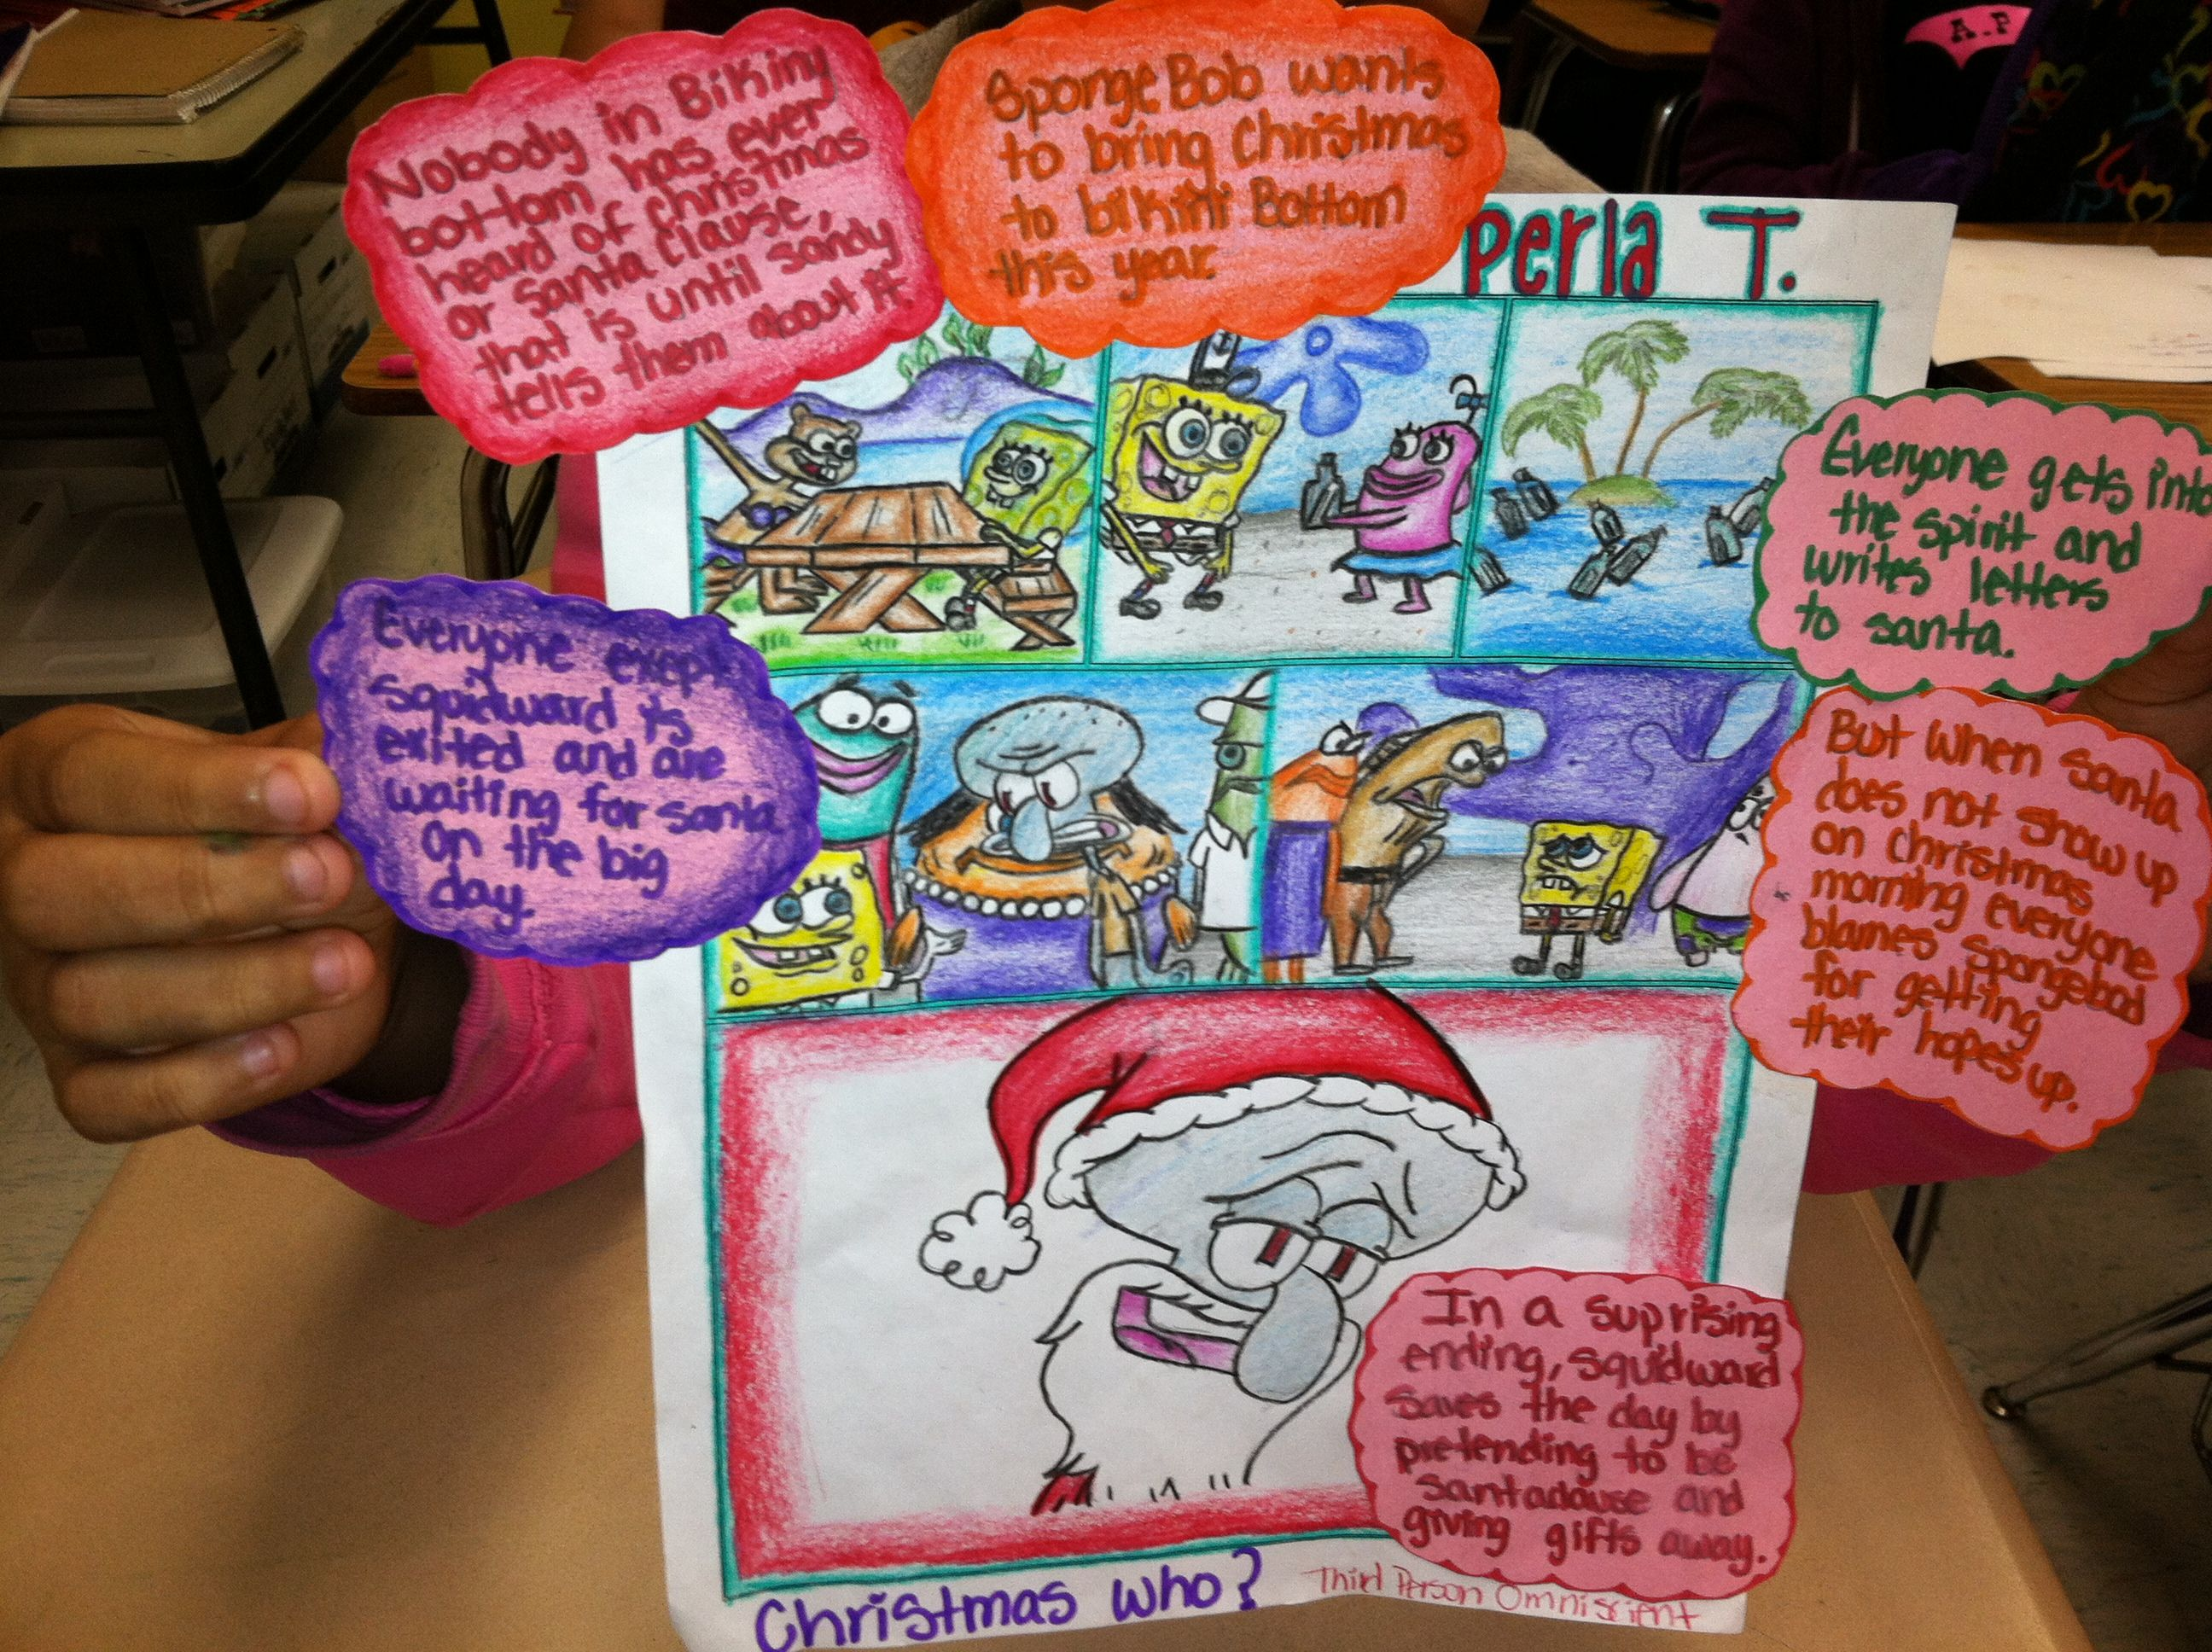 3rd Person Point Of View Omniscient Comic Strip 8th Grade